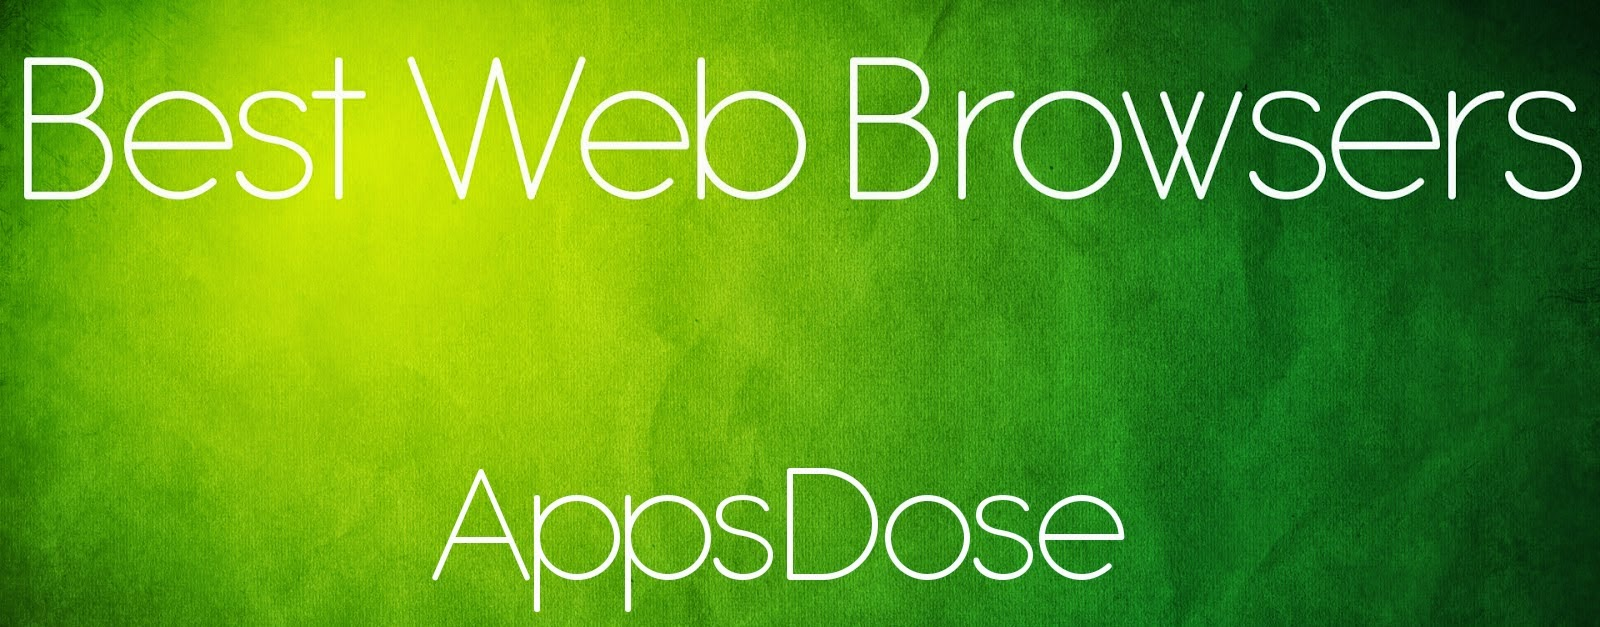 best web browsers for iPhone and iPad